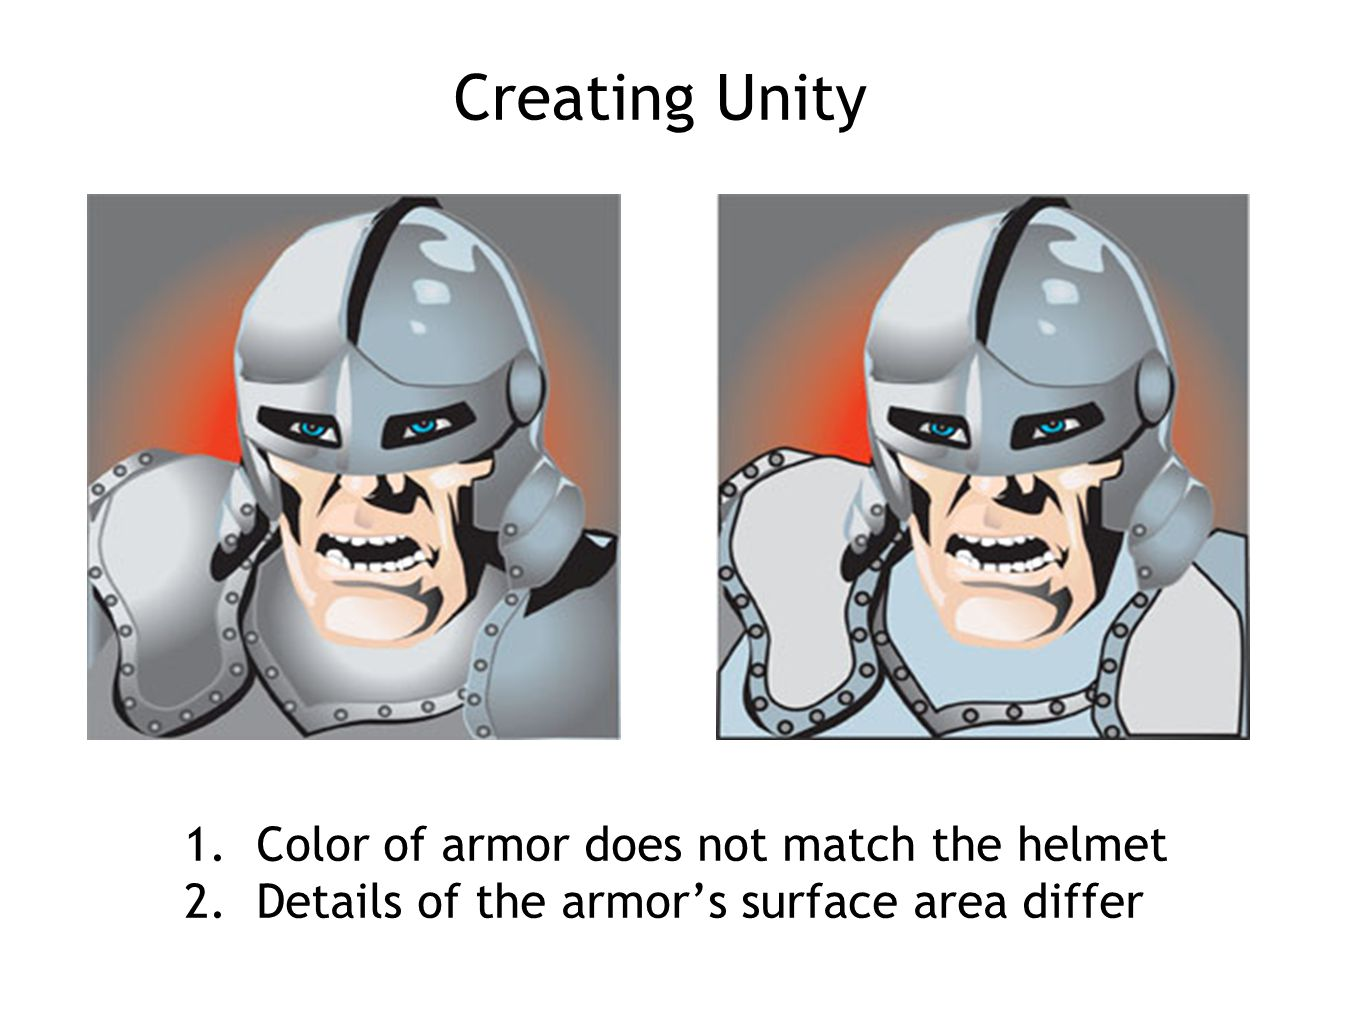 Creating Unity 1. Color of armor does not match the helmet 2. Details of the armor's surface area differ